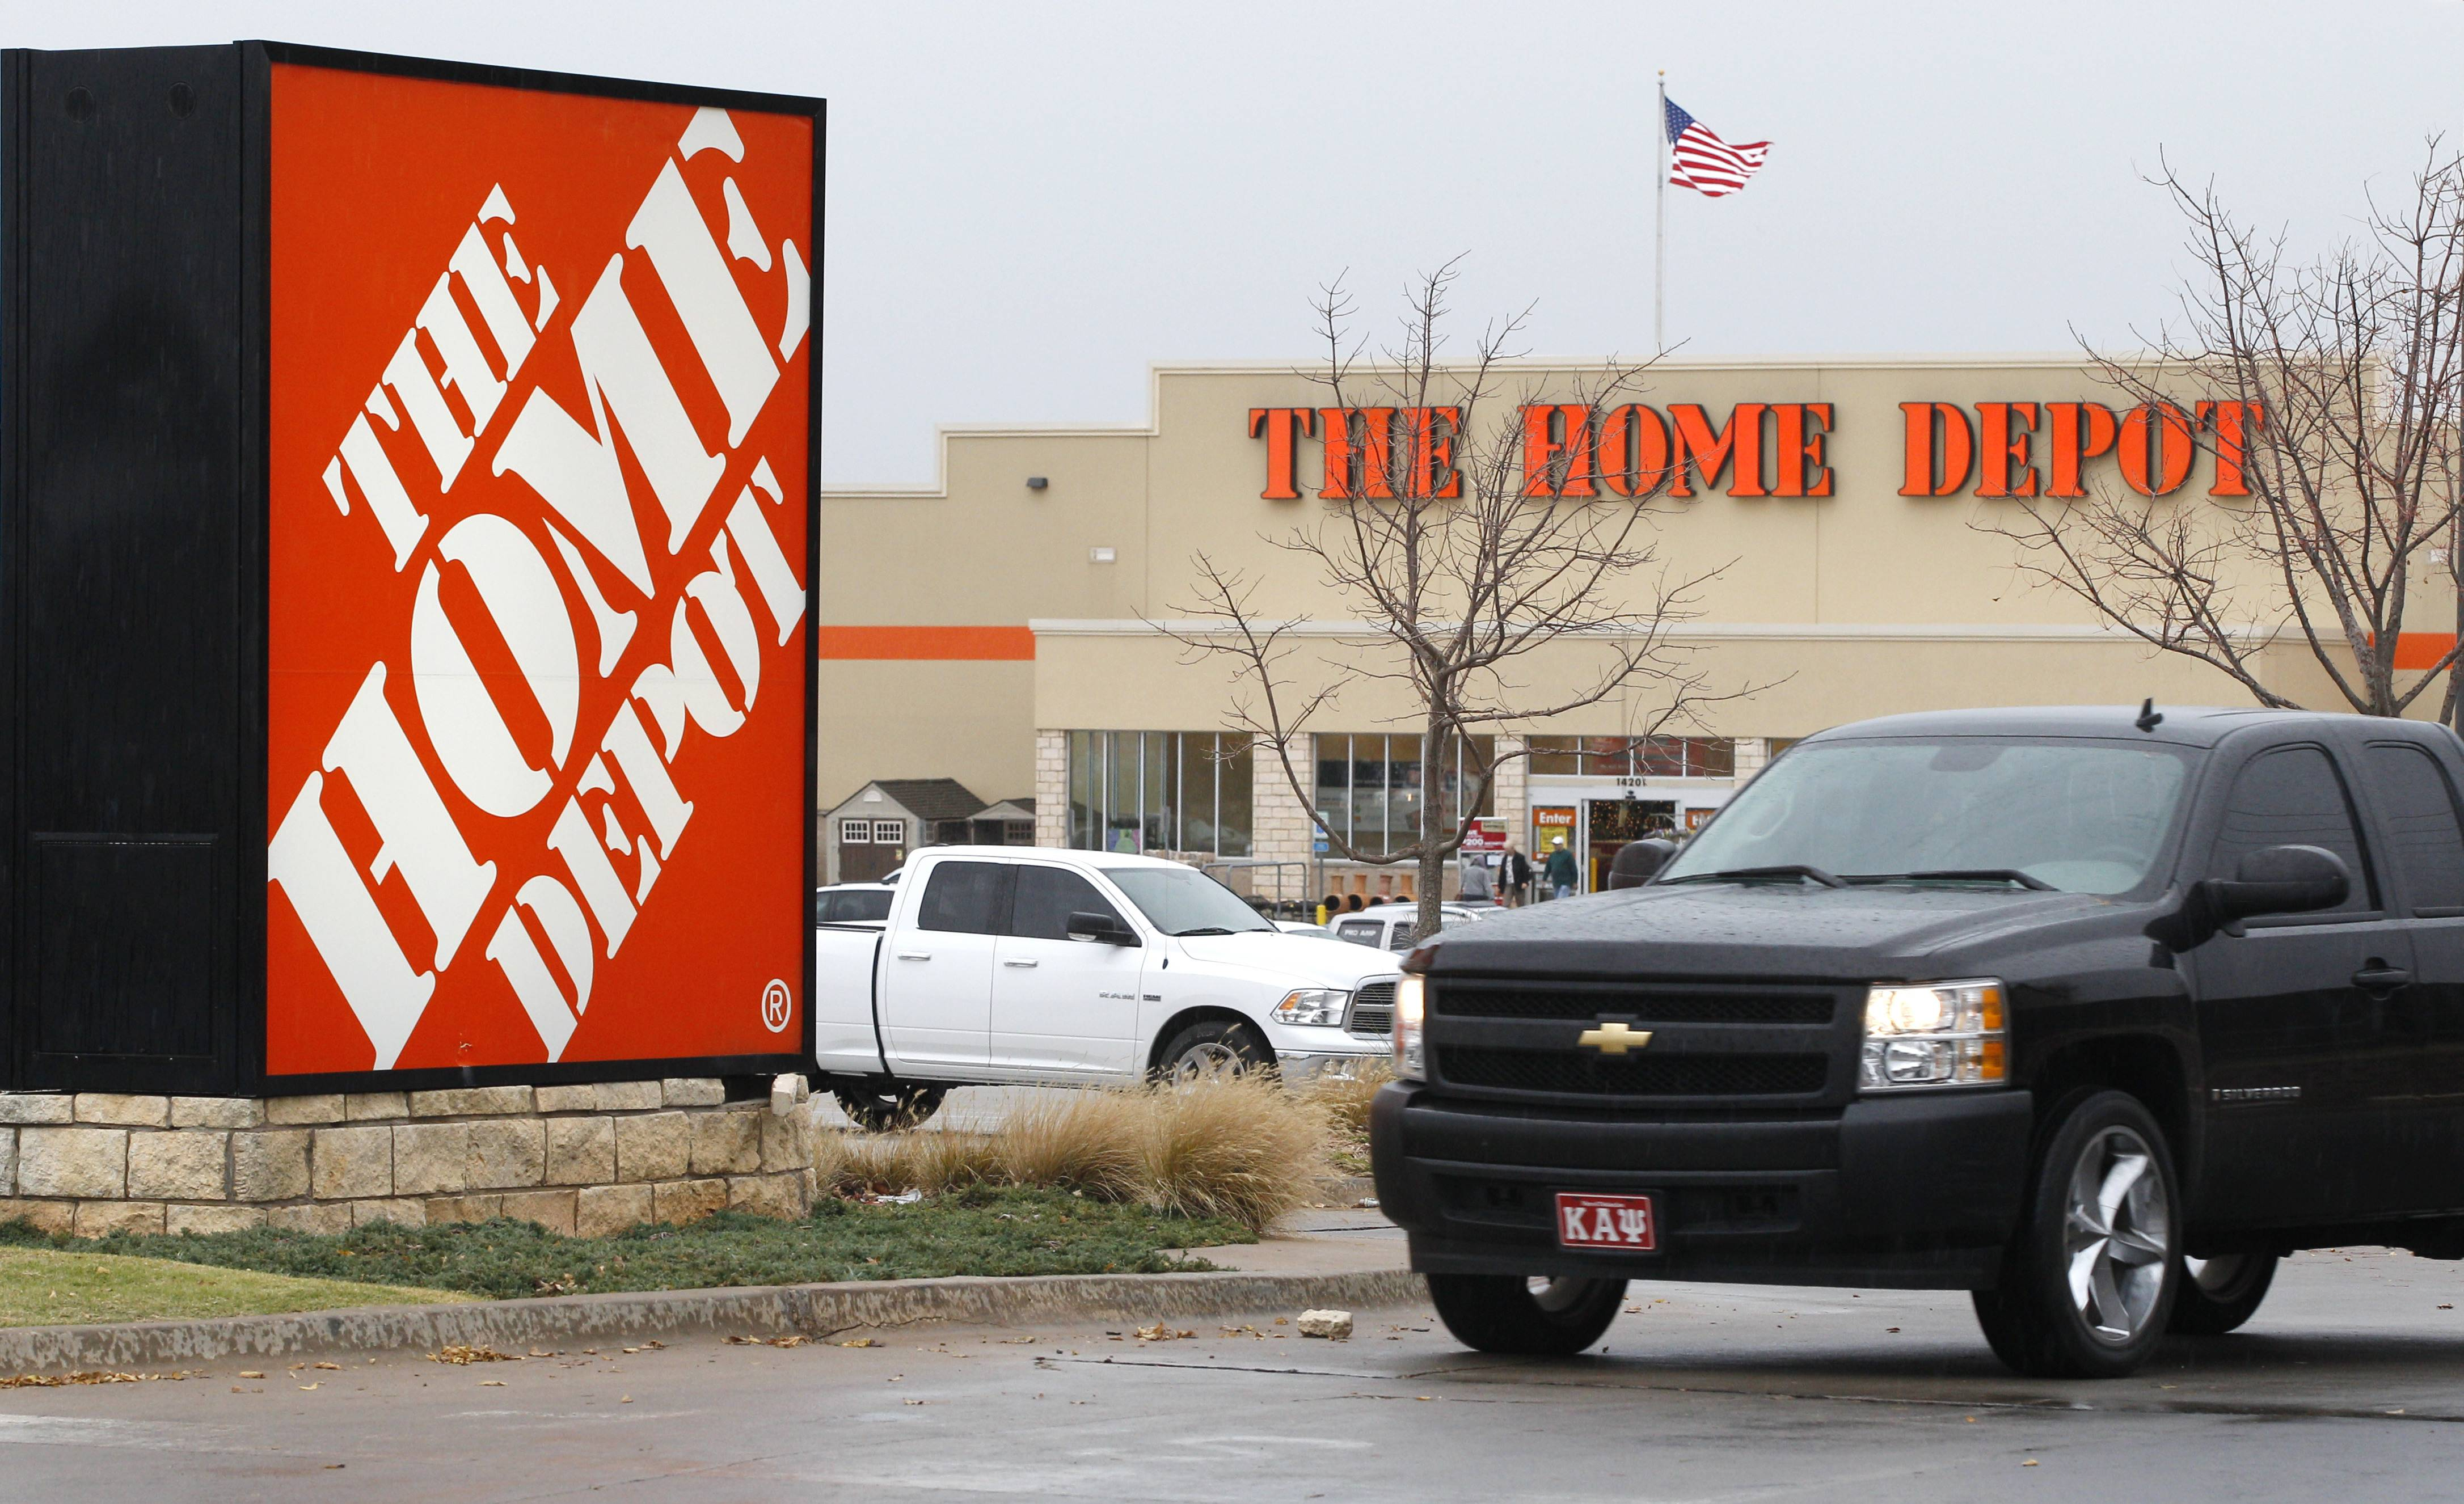 Home Depot's fiscal first-quarter net income climbed 12 percent as a key sales metric improved despite a slow start to the spring selling season due to bad weather.